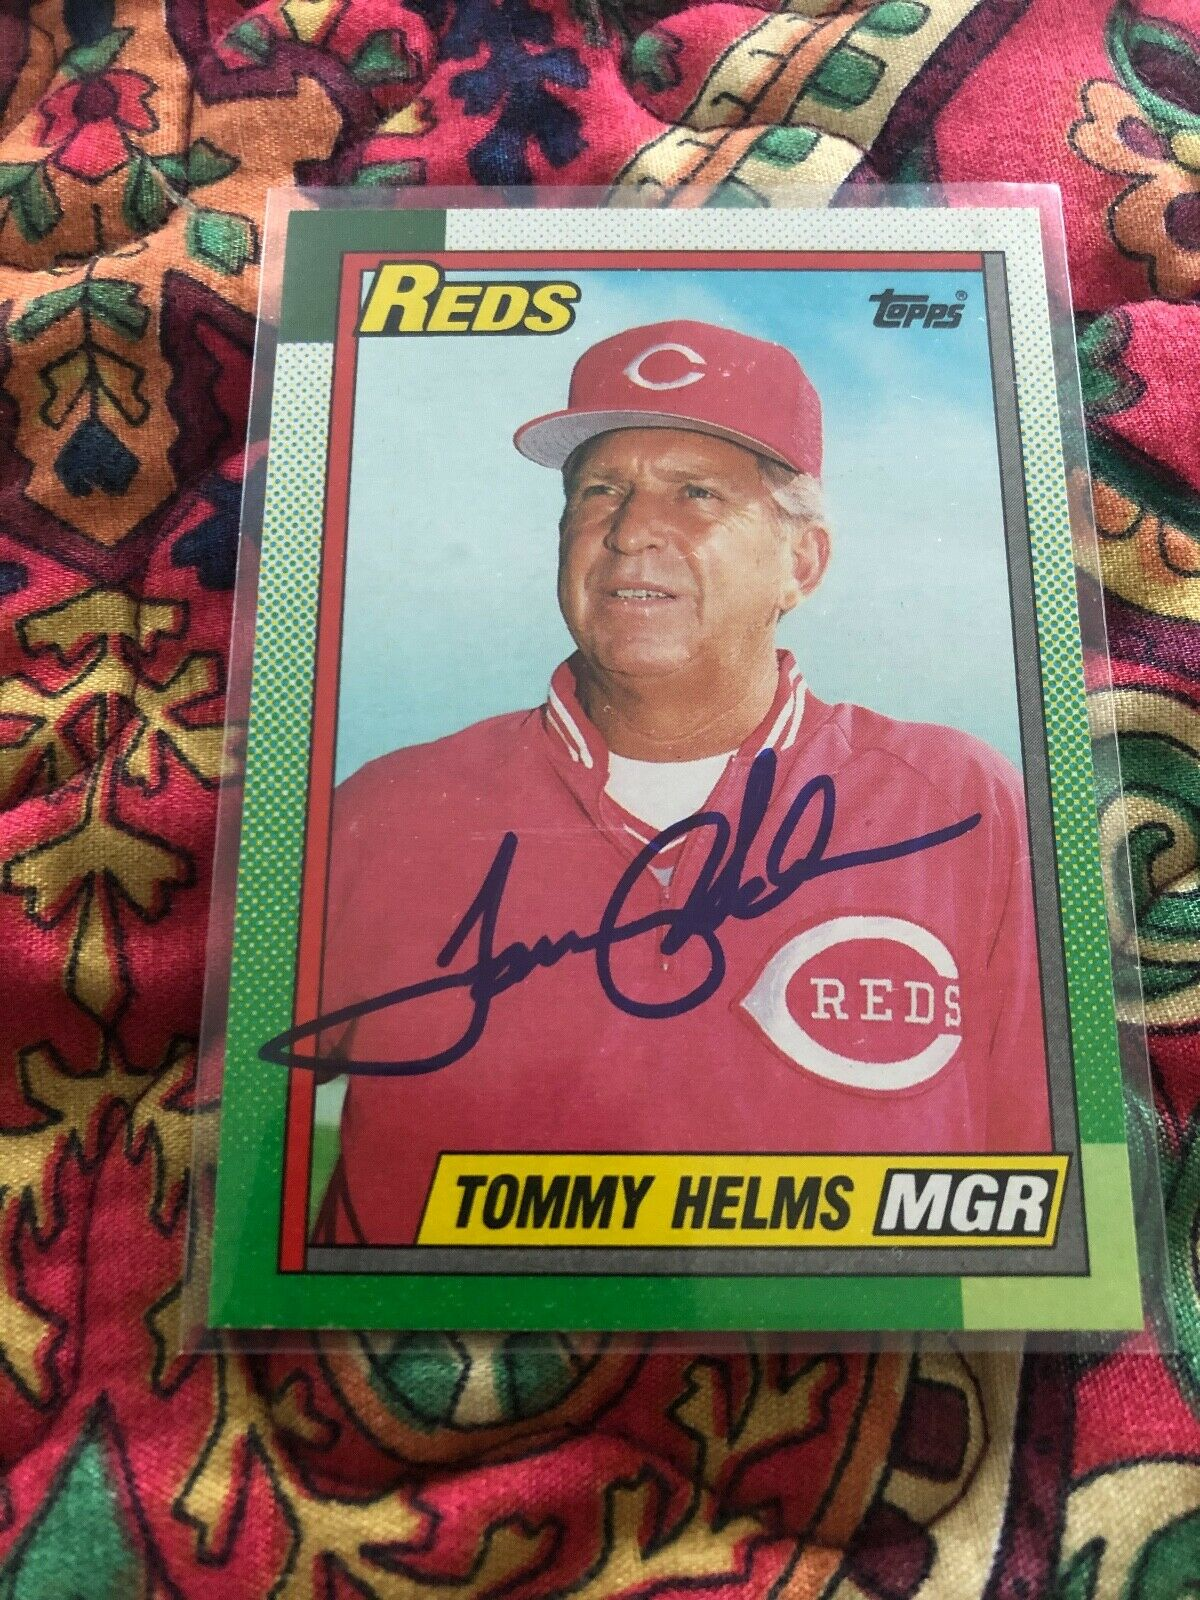 TOMMY HELMS SIGNED AUTOGRAPHED1990 TOPPS CARD #110 REDS MANAGER - Image 1